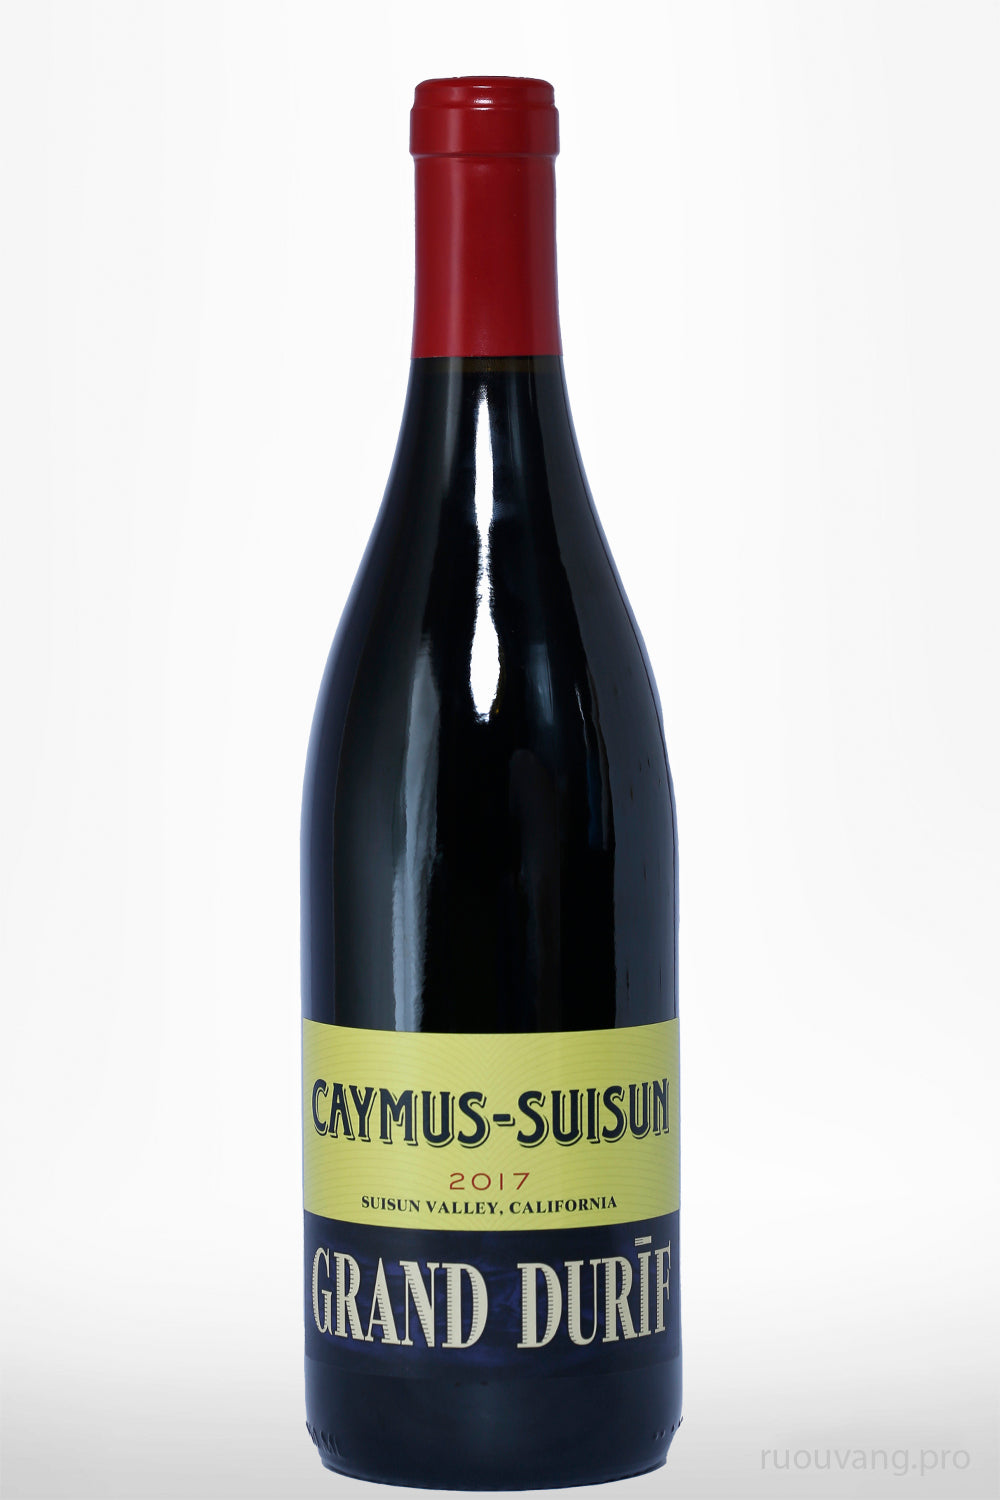 Caymus-Suisun Grand Durif - Suisun Valley 2017